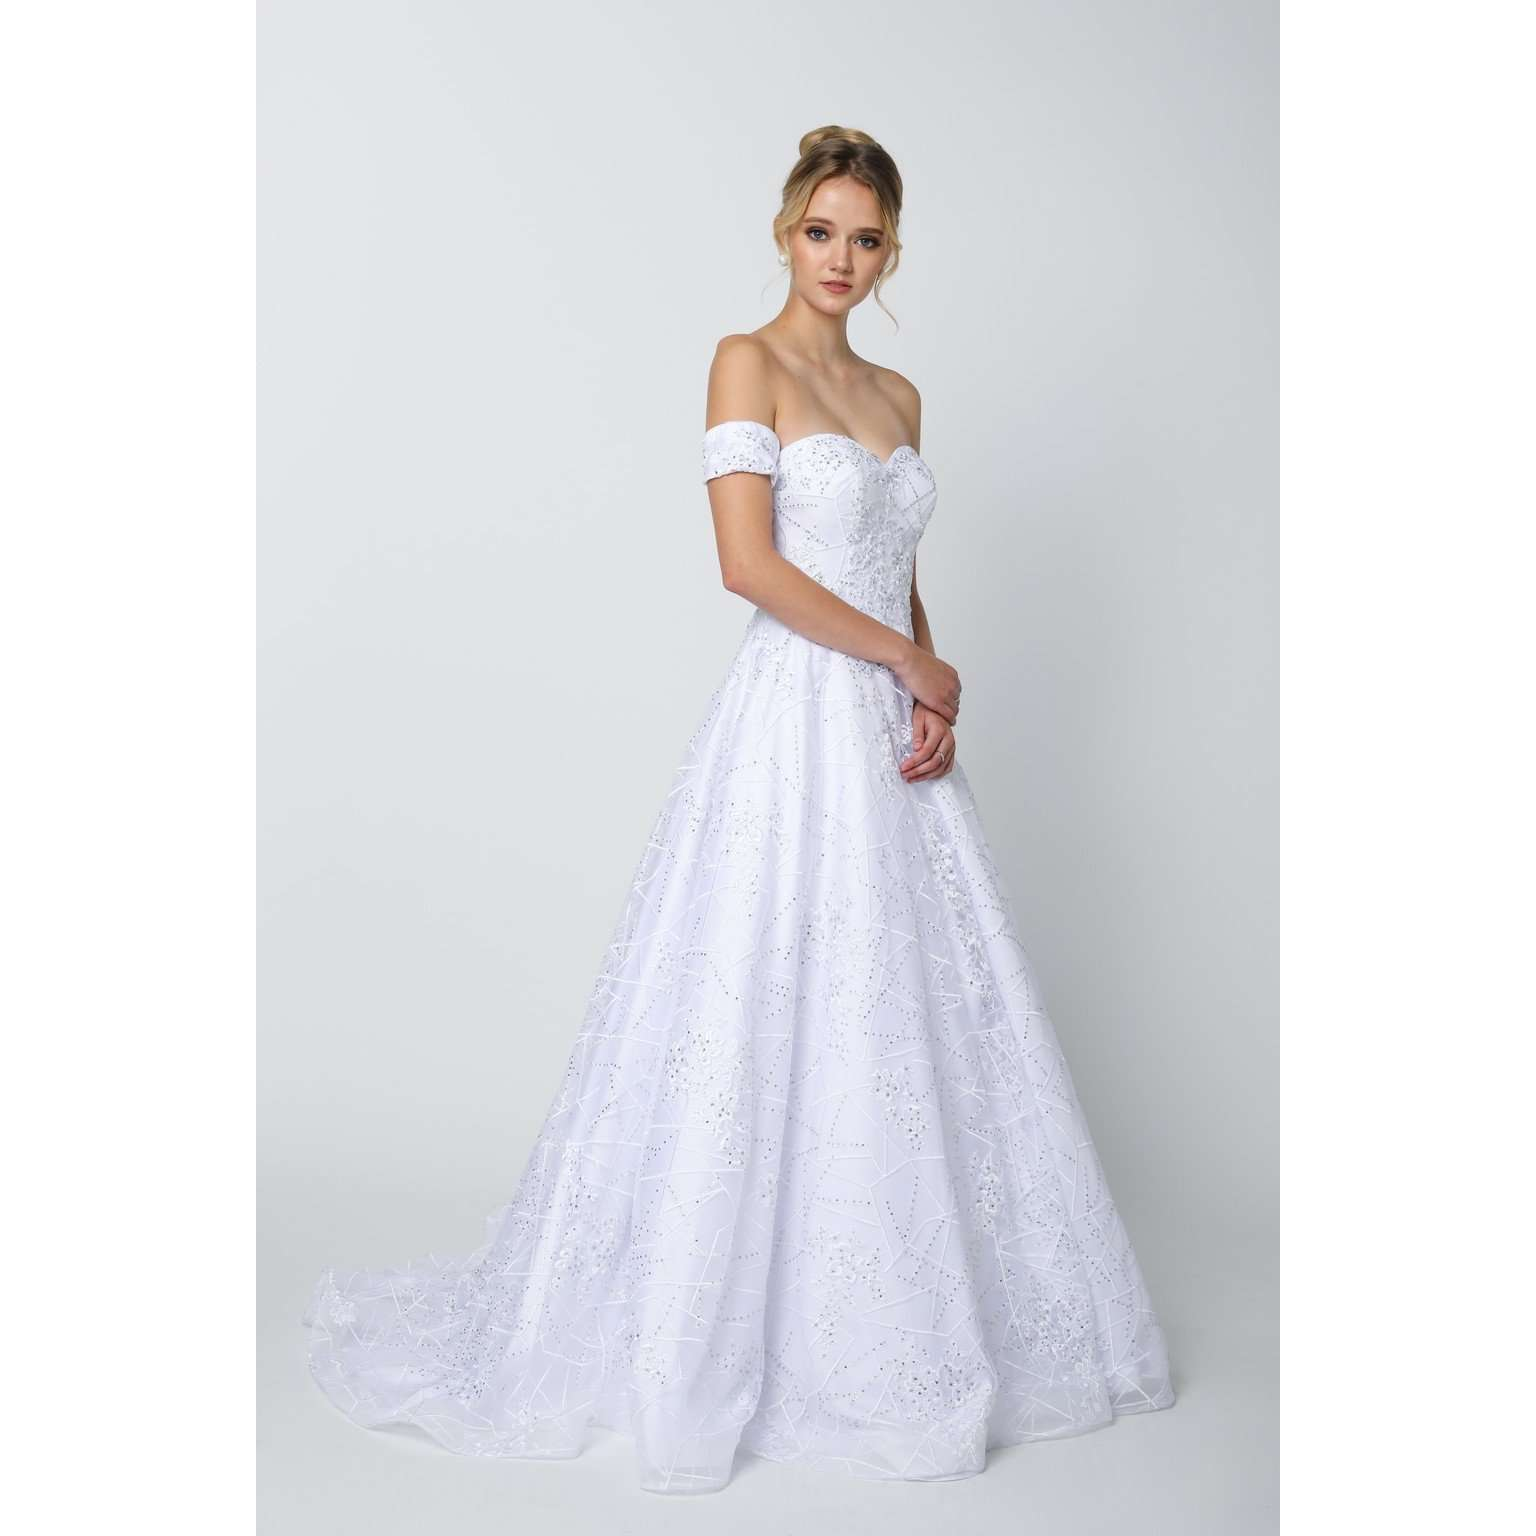 Embroidered Lace Ball Gown Dress with Arm Band 692 - Julietdresses